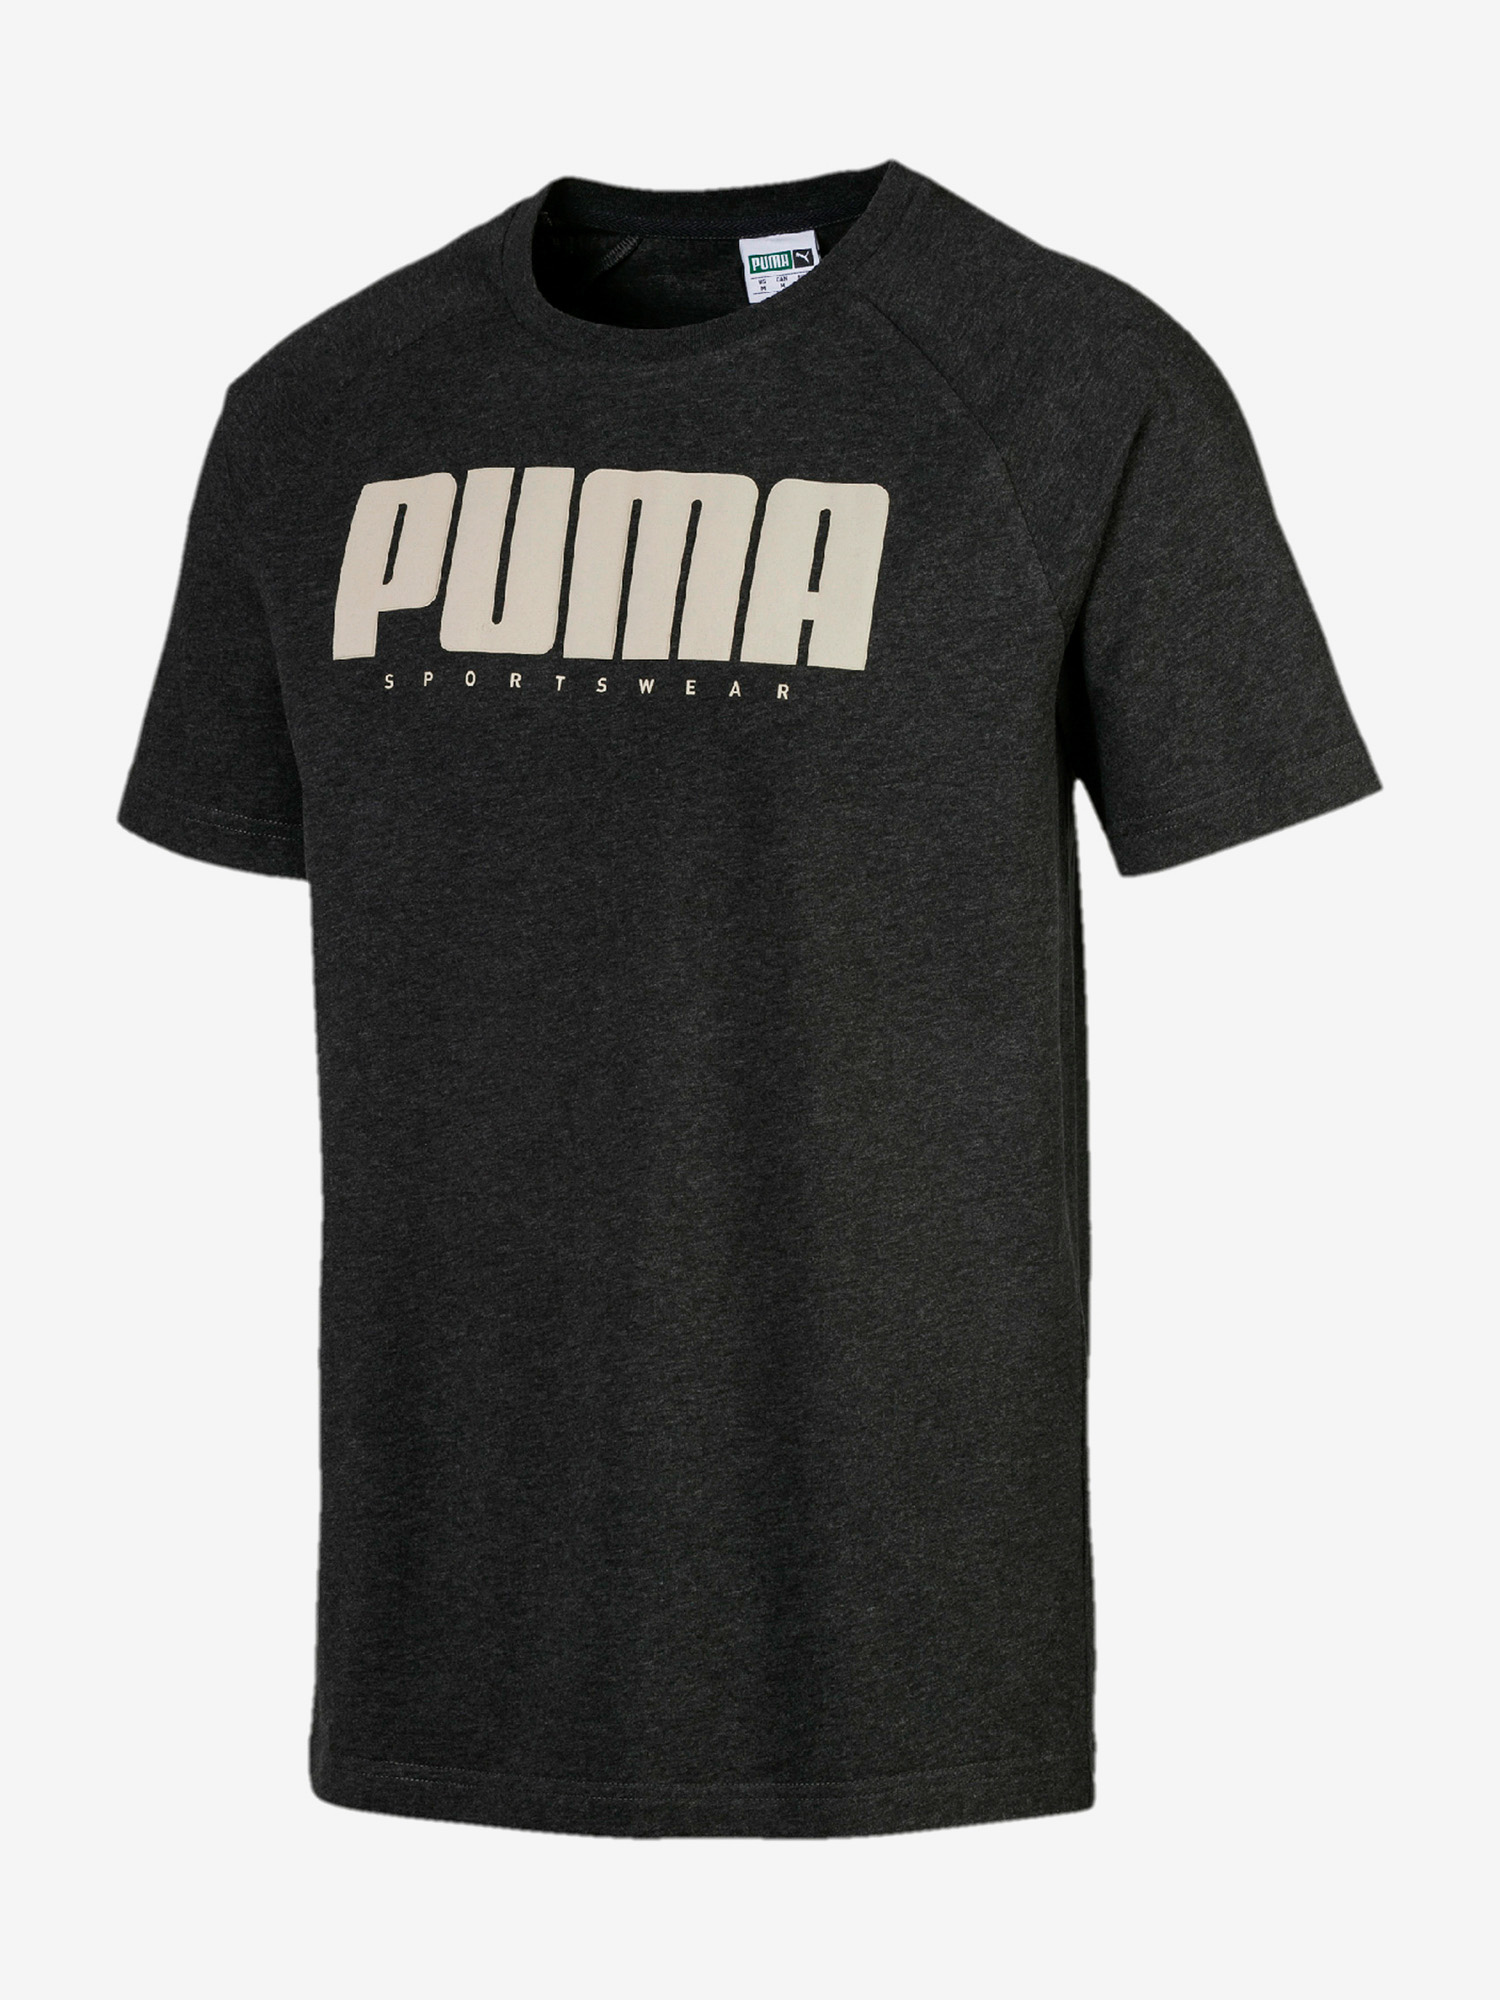 Tričko Puma Athletics Tee Šedá